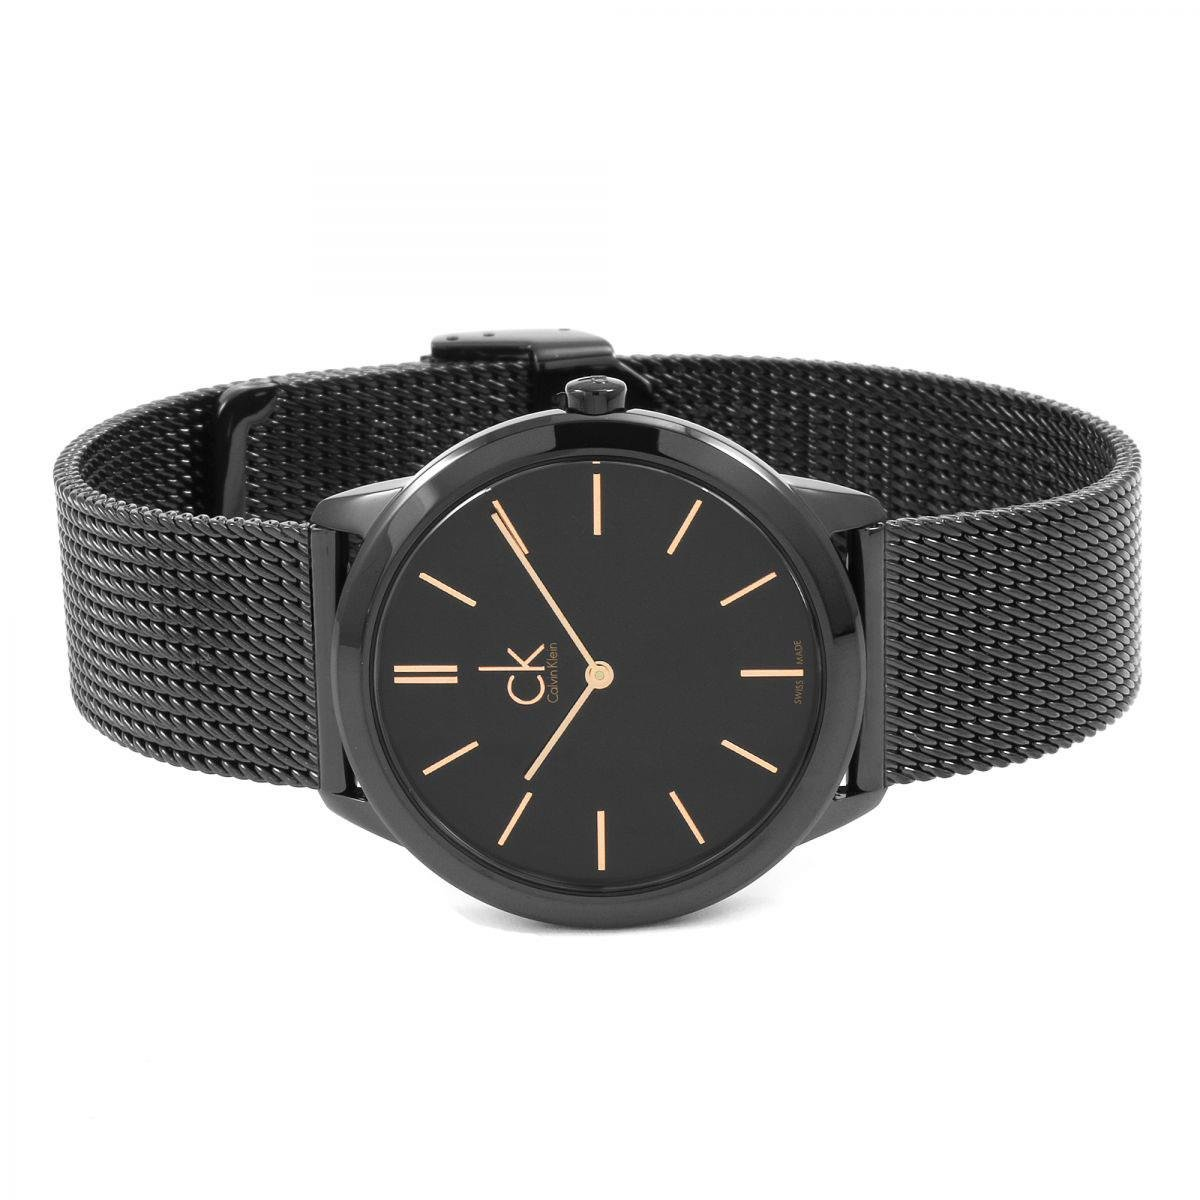 Amazon.com: Calvin Klein K3M22421 Ladies Minimal Black Steel Mesh Bracelet Watch: Watches